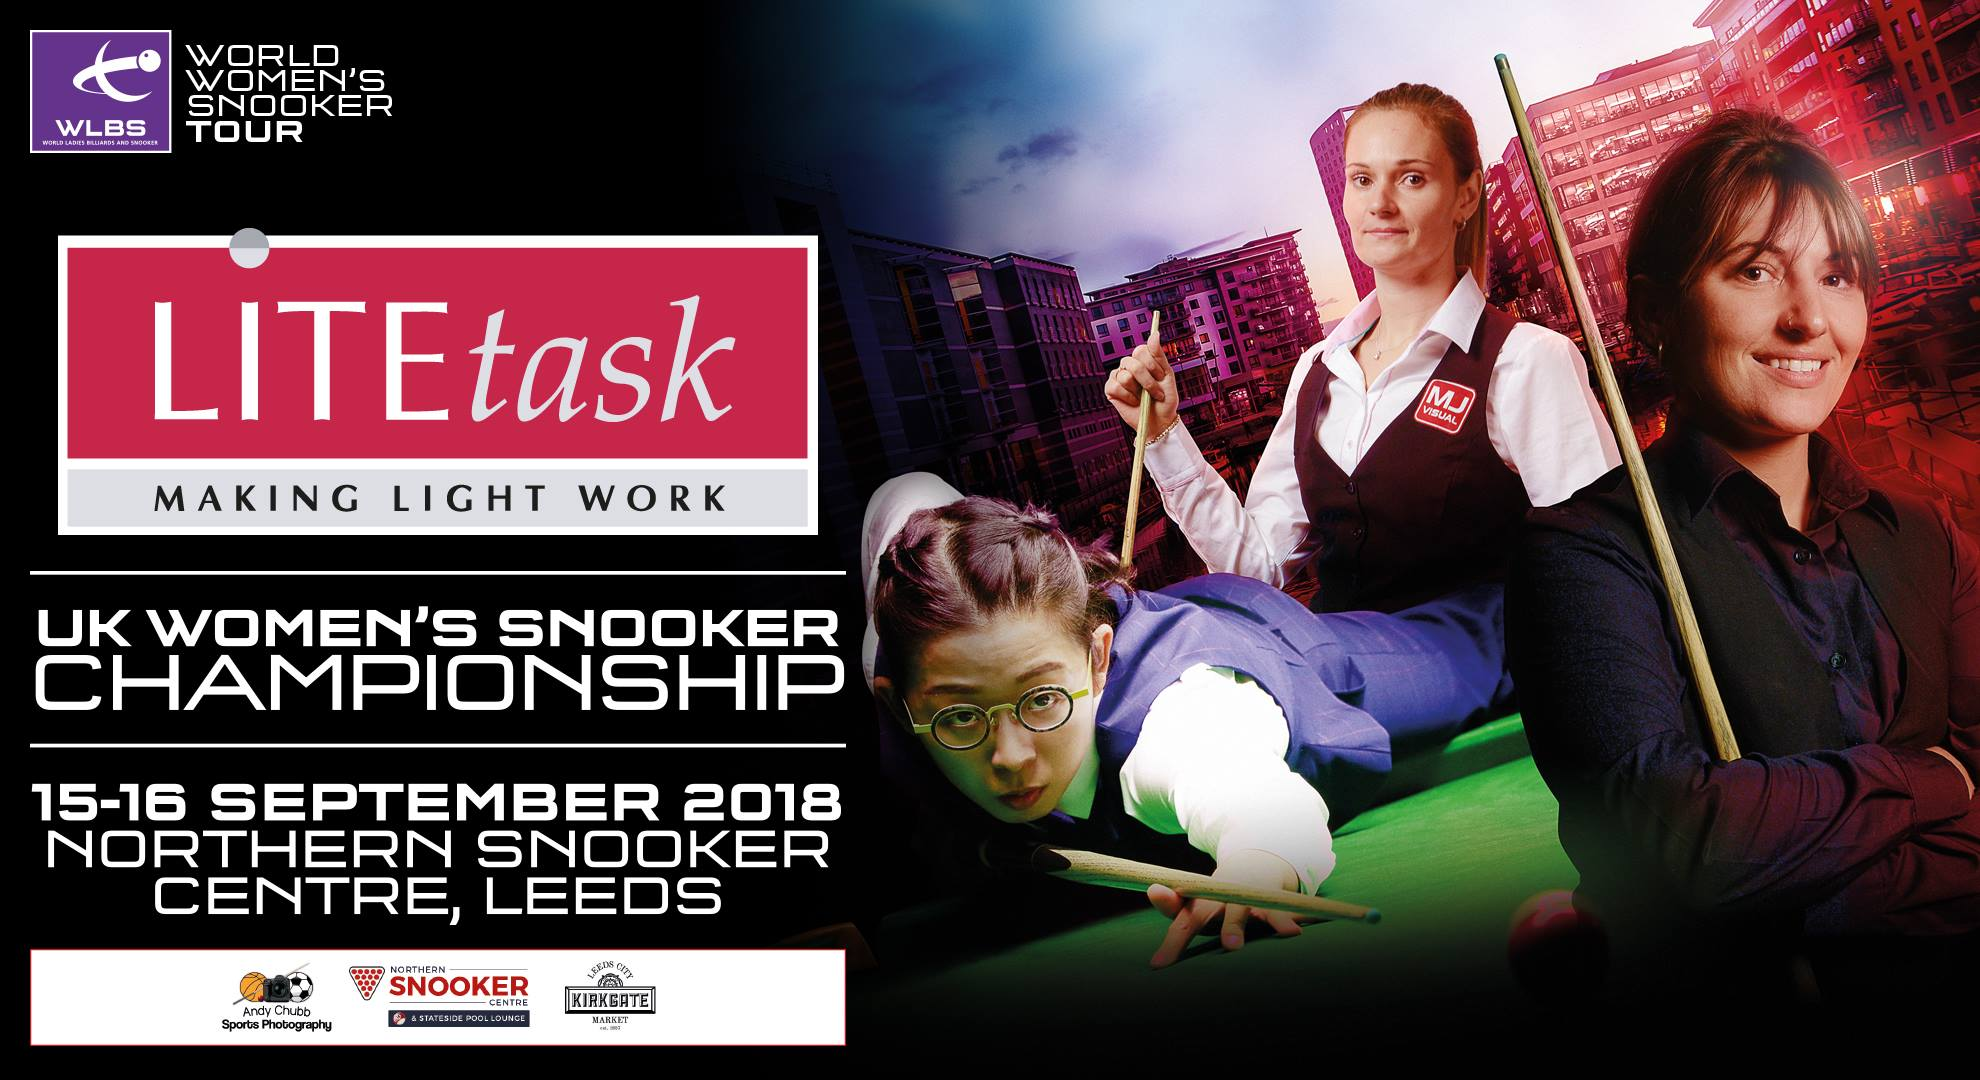 LiteTask UK Women's Snooker Championship 2018